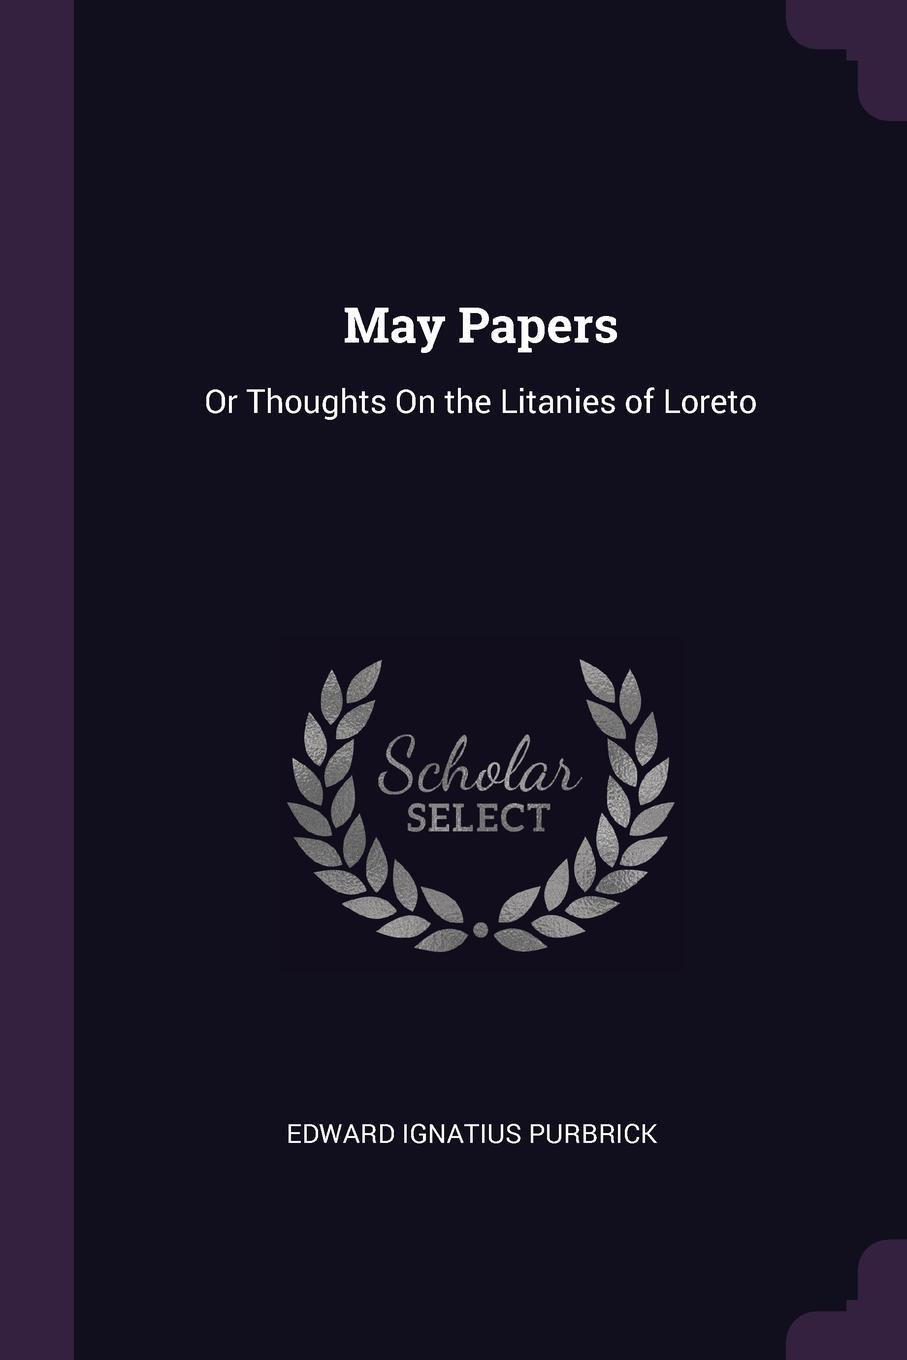 Edward Ignatius Purbrick. May Papers. Or Thoughts On the Litanies of Loreto